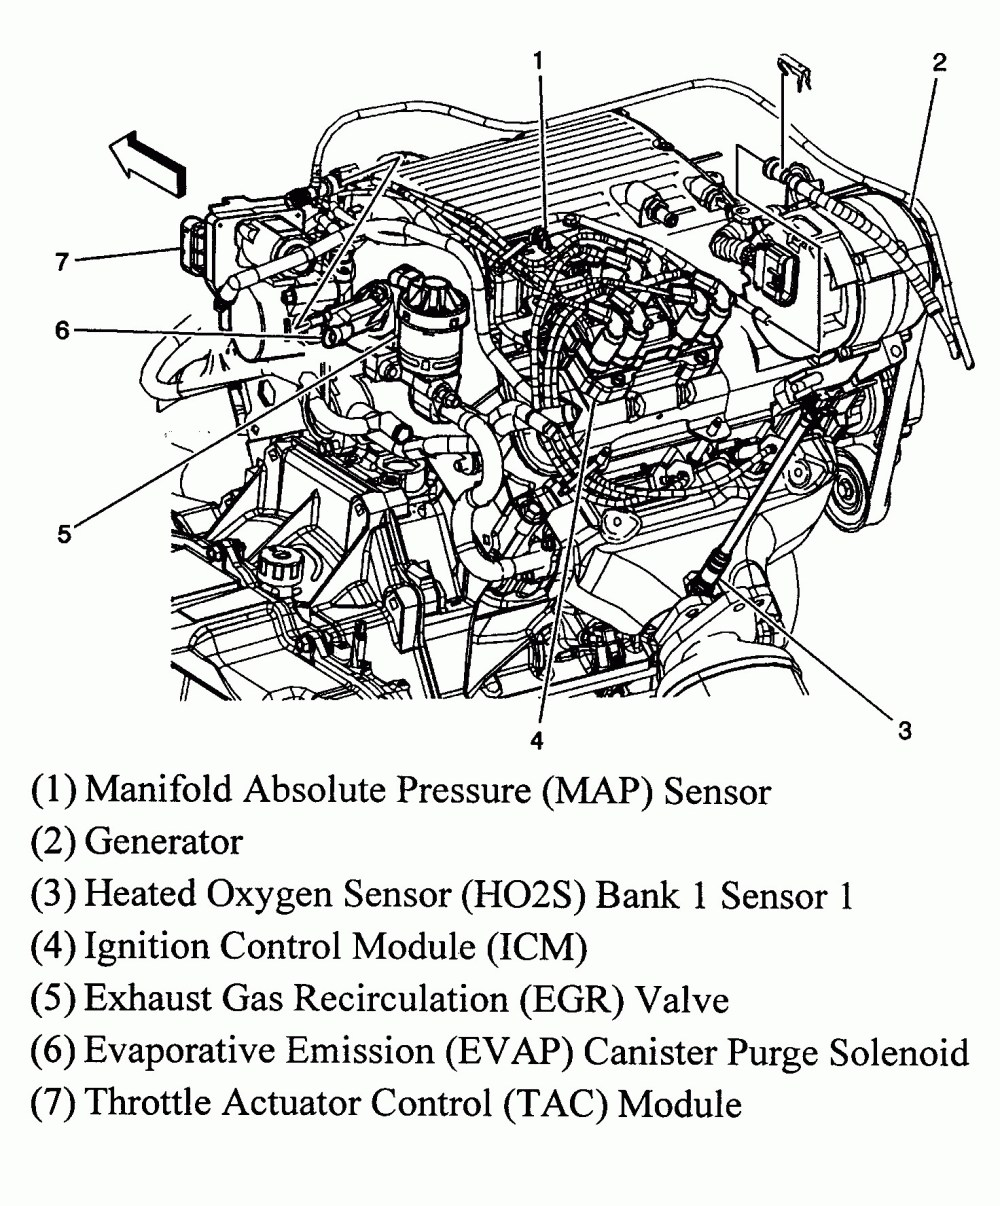 medium resolution of 2006 pontiac montana engine diagram wiring diagram post 1999 pontiac montana engine diagram 1999 pontiac montana engine diagram